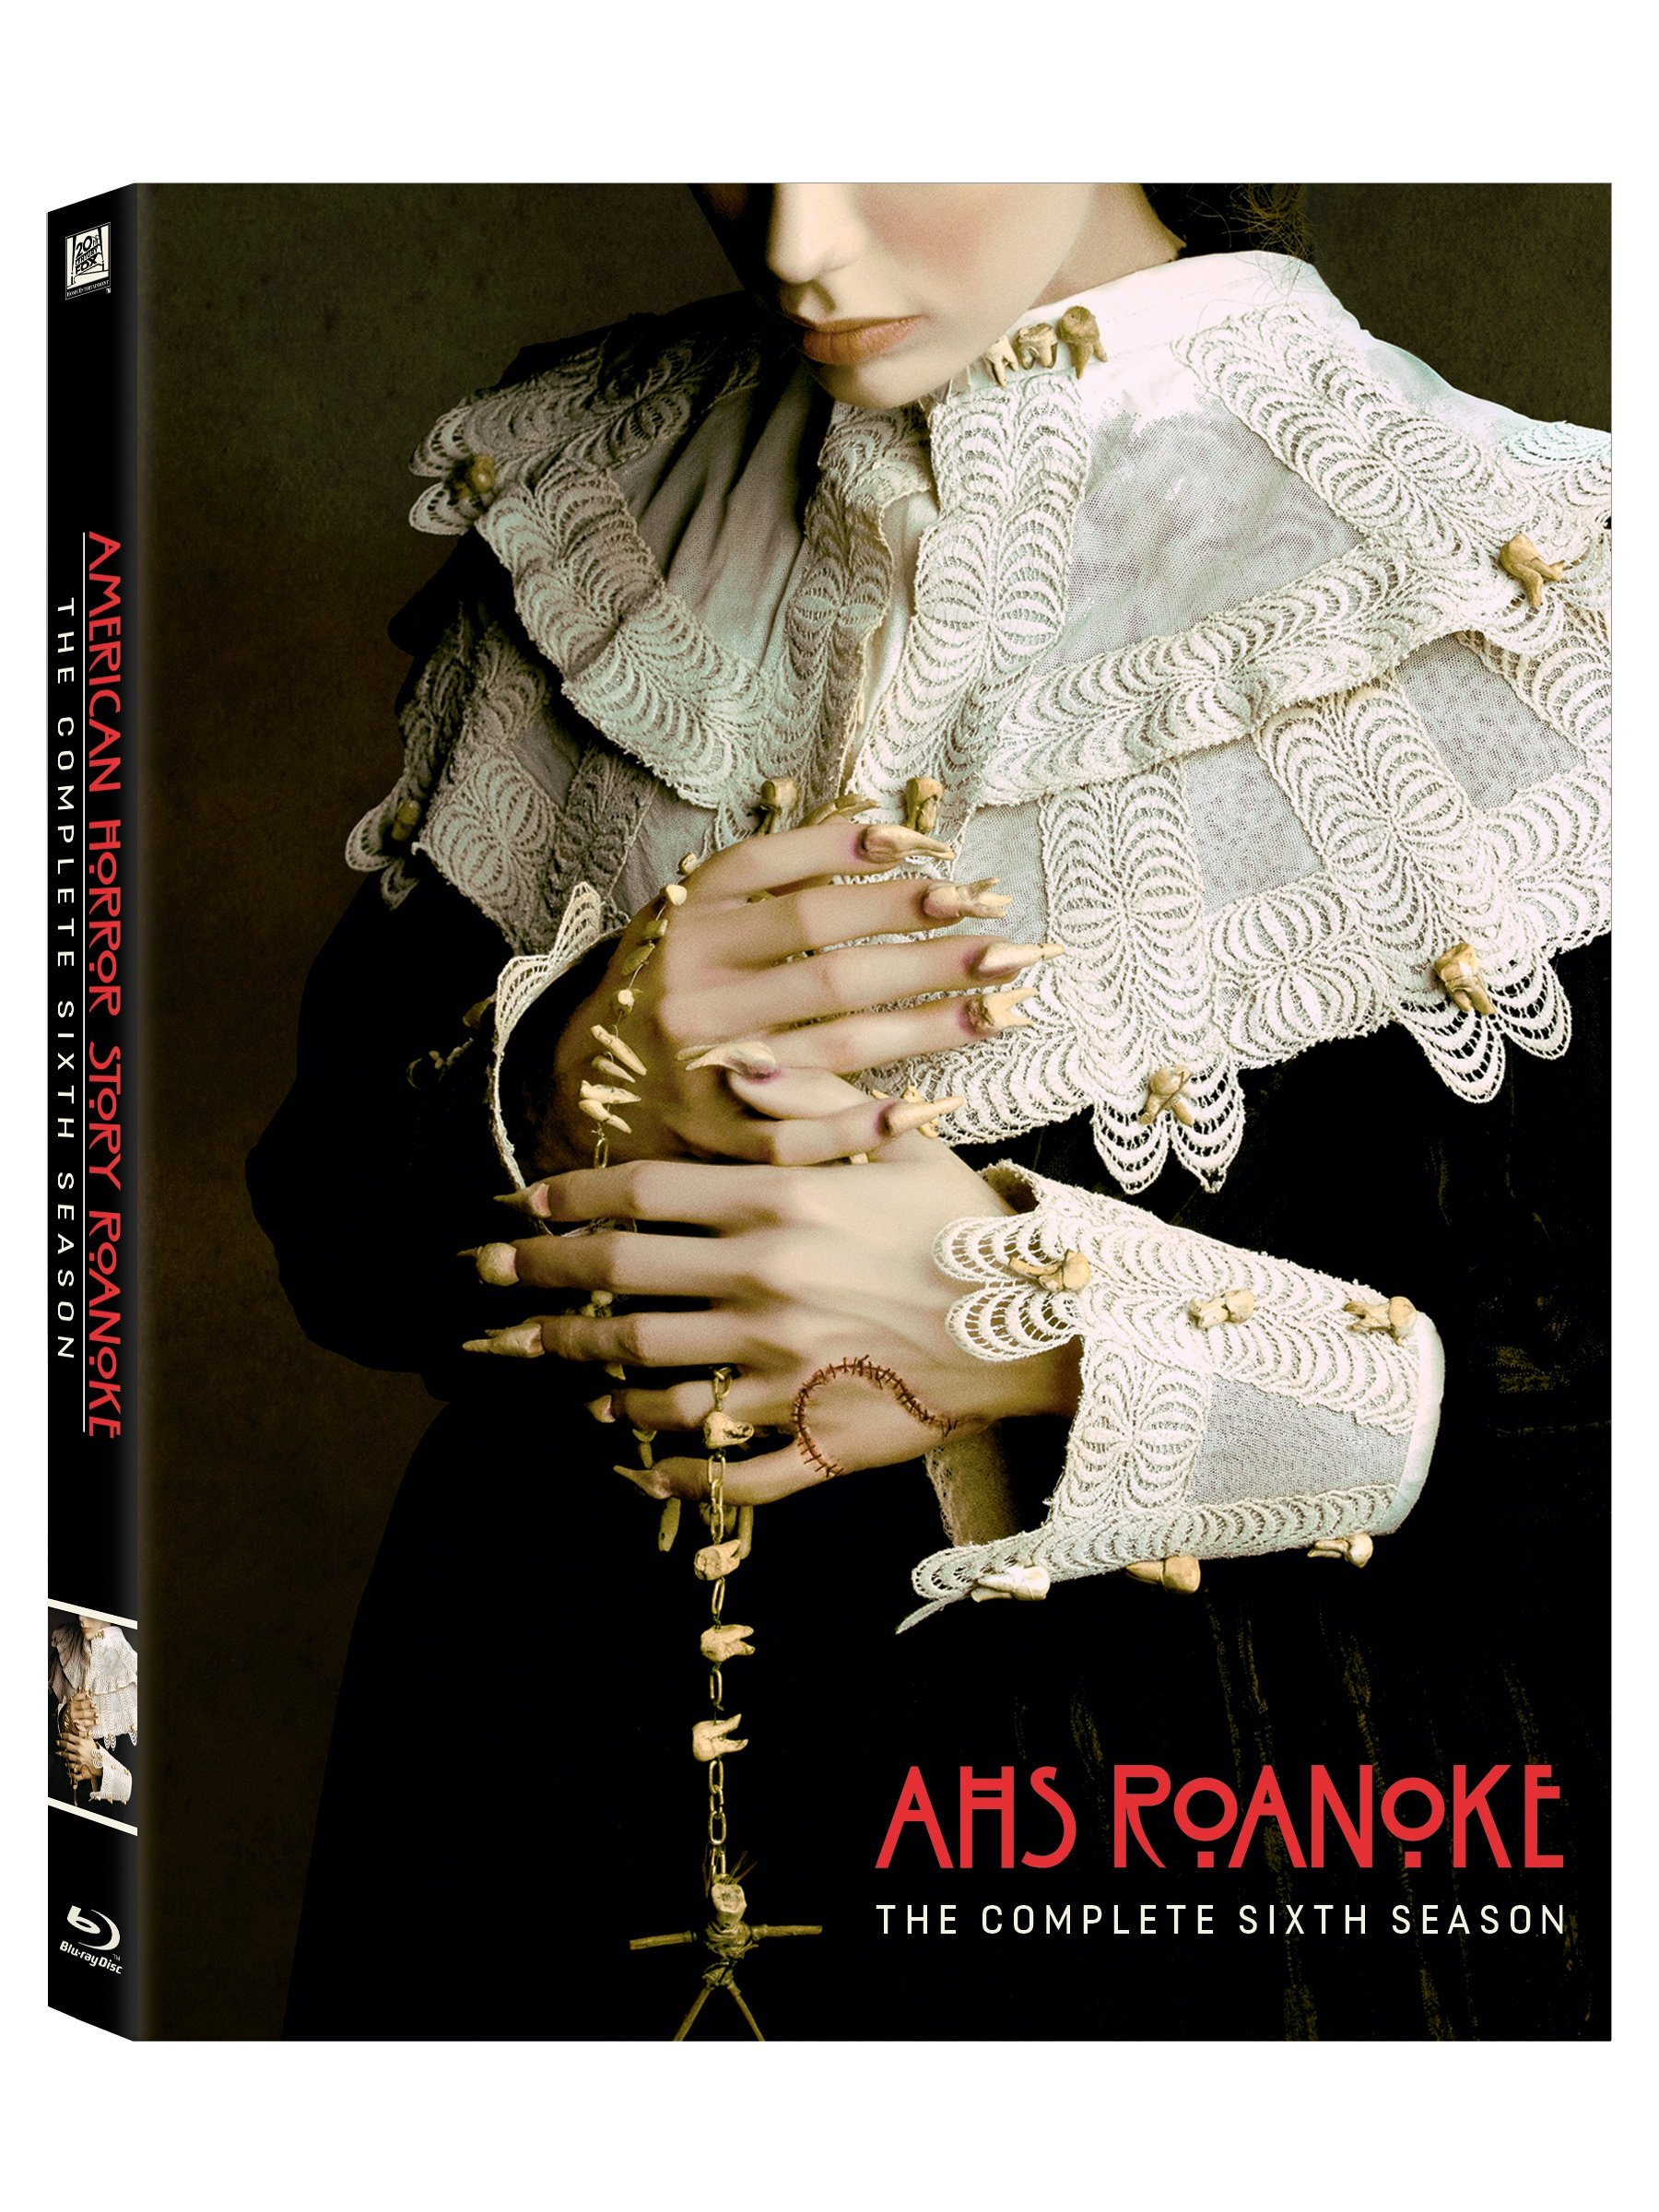 Blu-ray : American Horror Story: Roanoke: The Complete Sixth Season (Dolby, AC-3, Digital Theater System, 3 Pack, Widescreen)